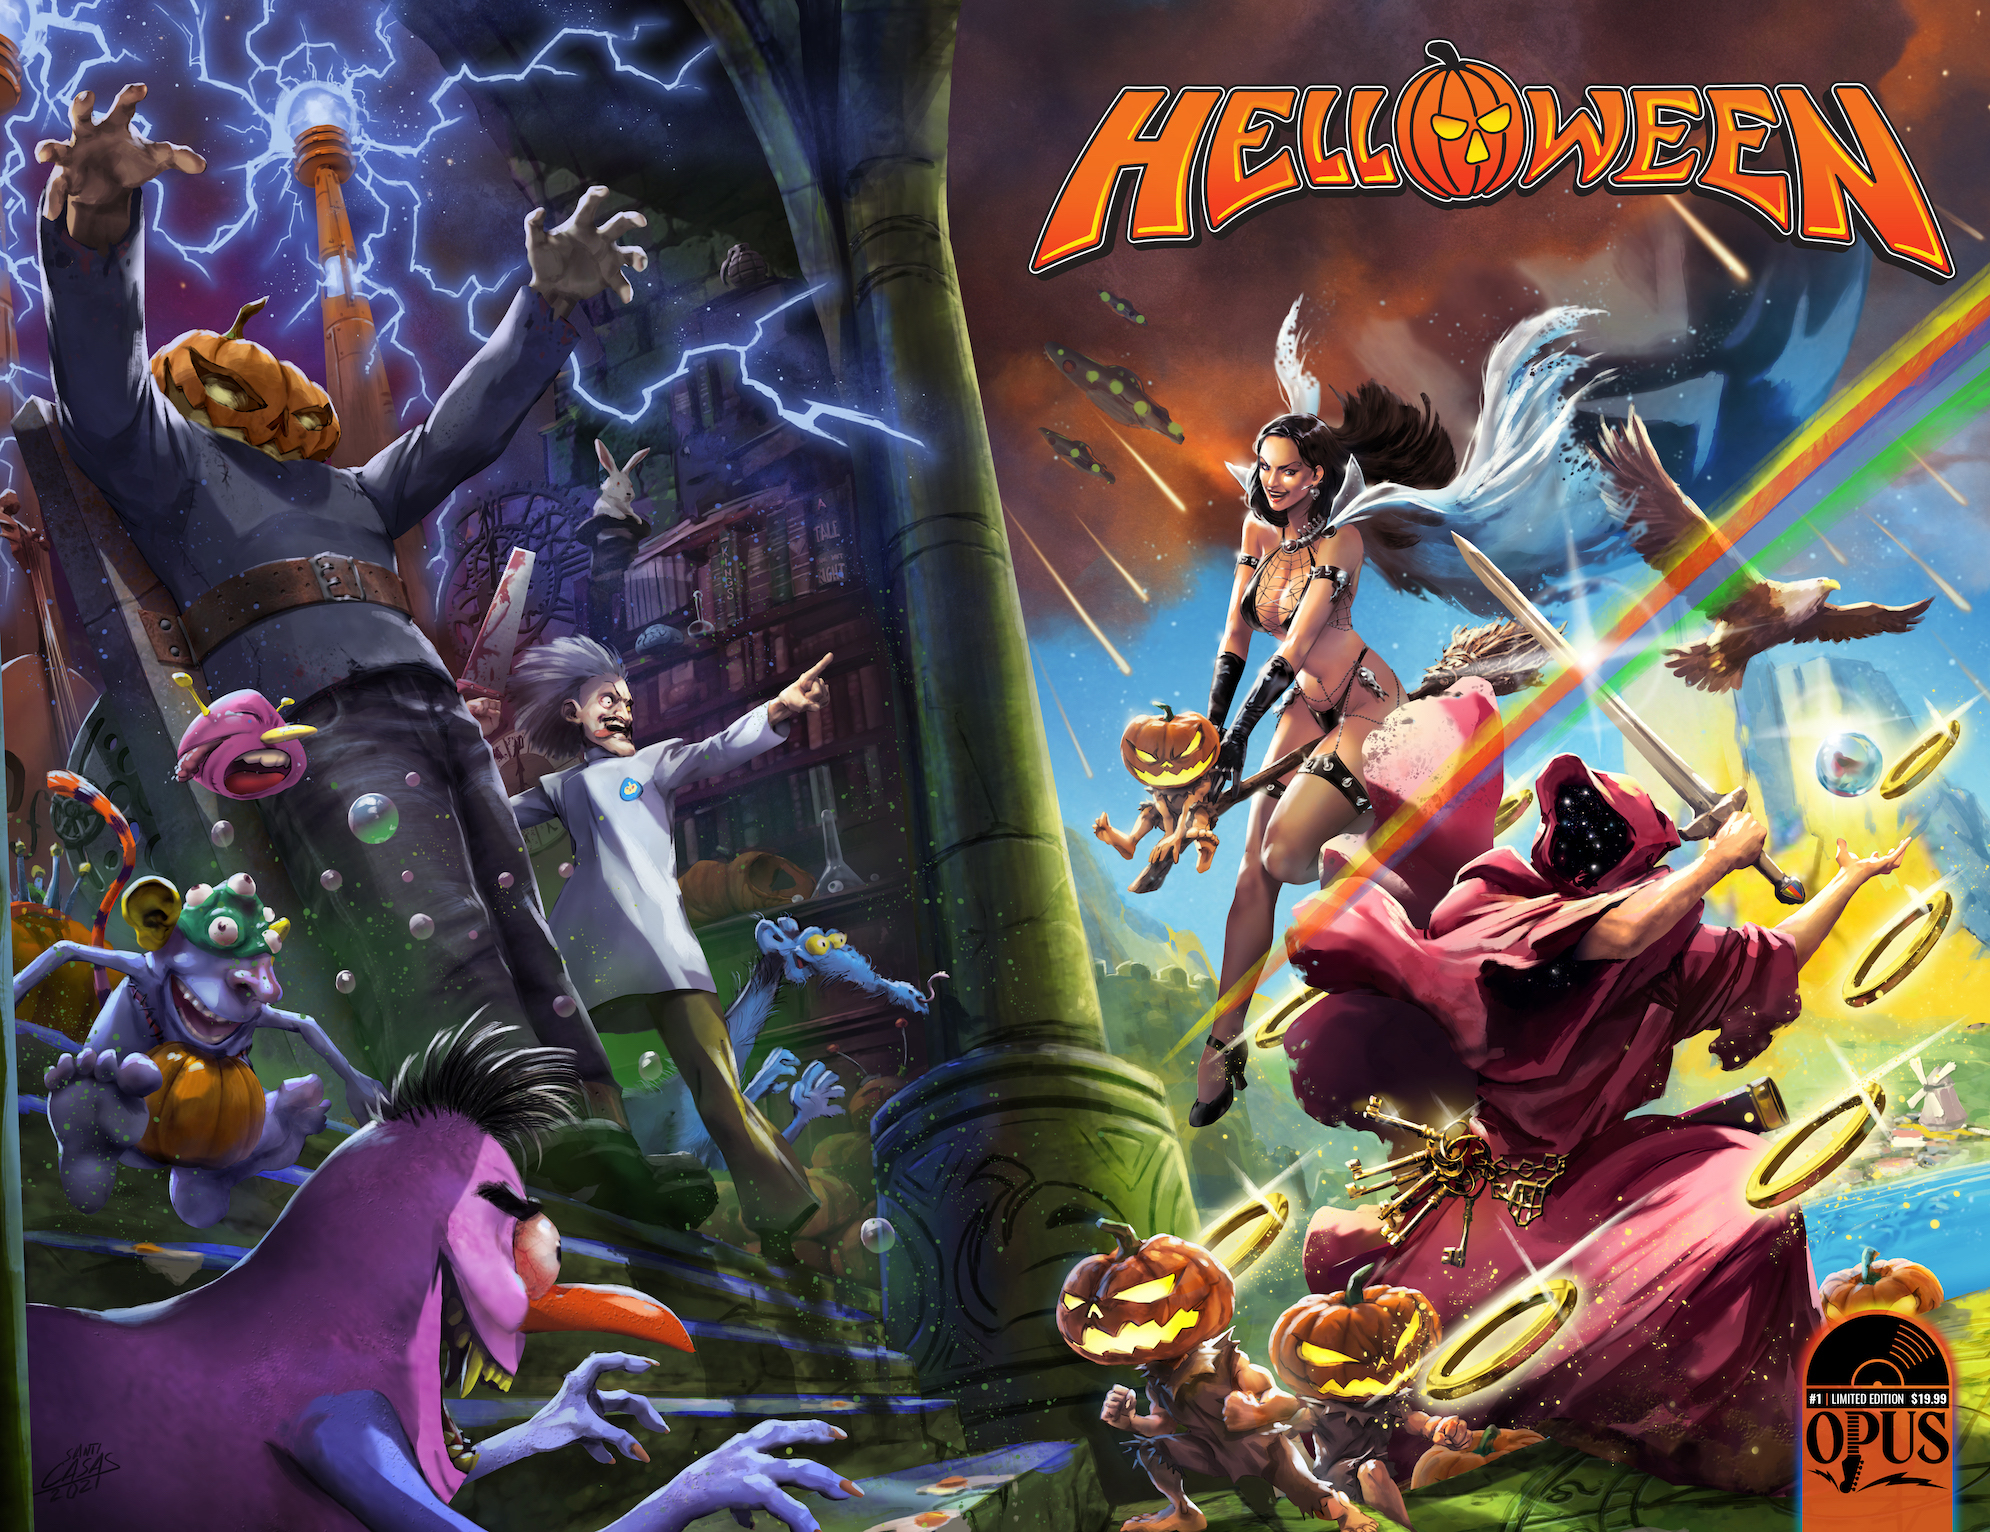 Helloween teams up with Incendium for comic book, and action figures